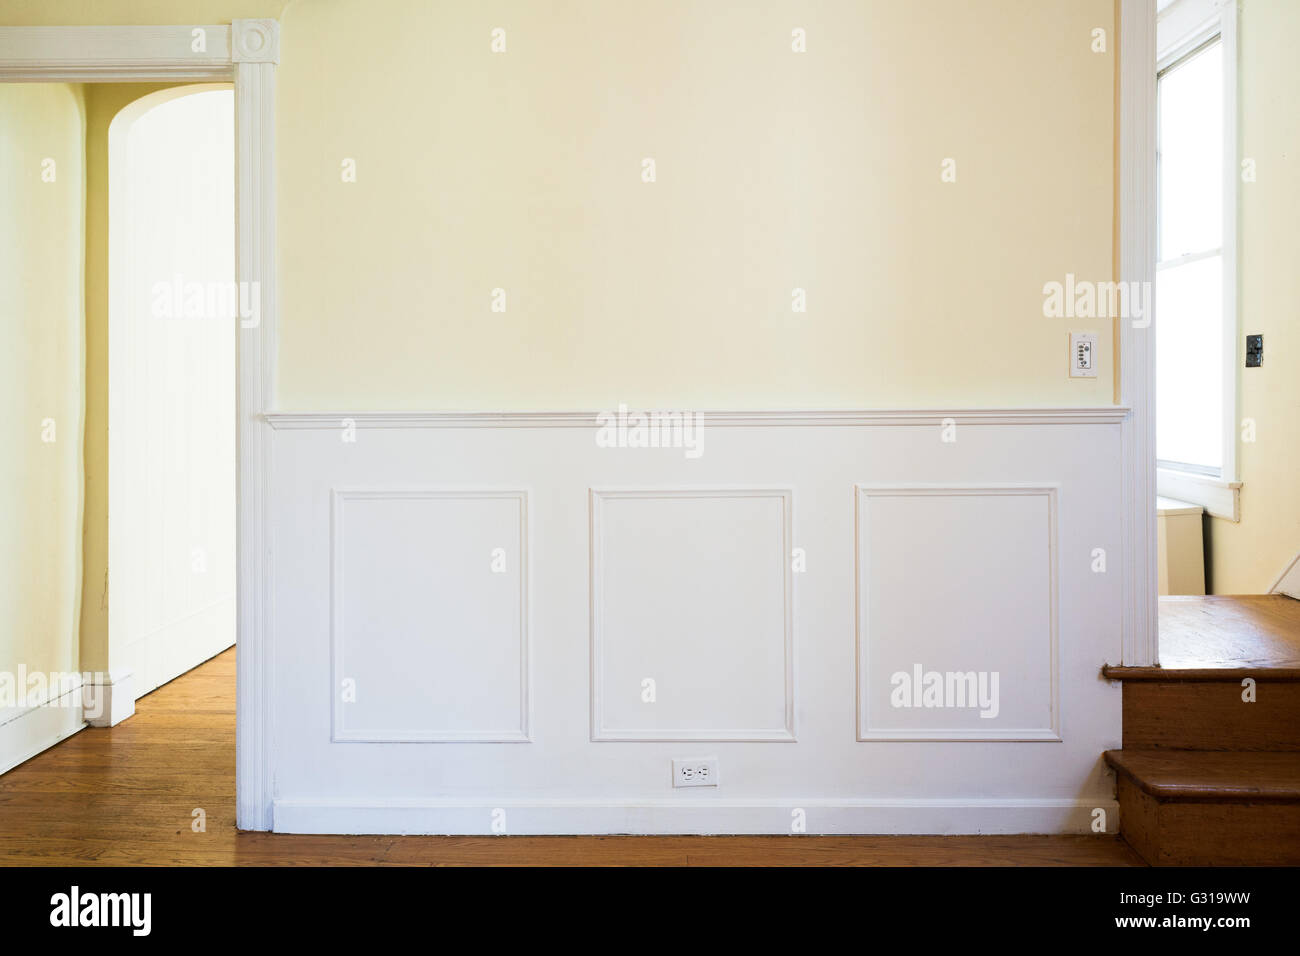 A wall with traditional paneled wainscoting and door molding in an elegant 1920s American townhome dining room & A wall with traditional paneled wainscoting and door molding in an ...